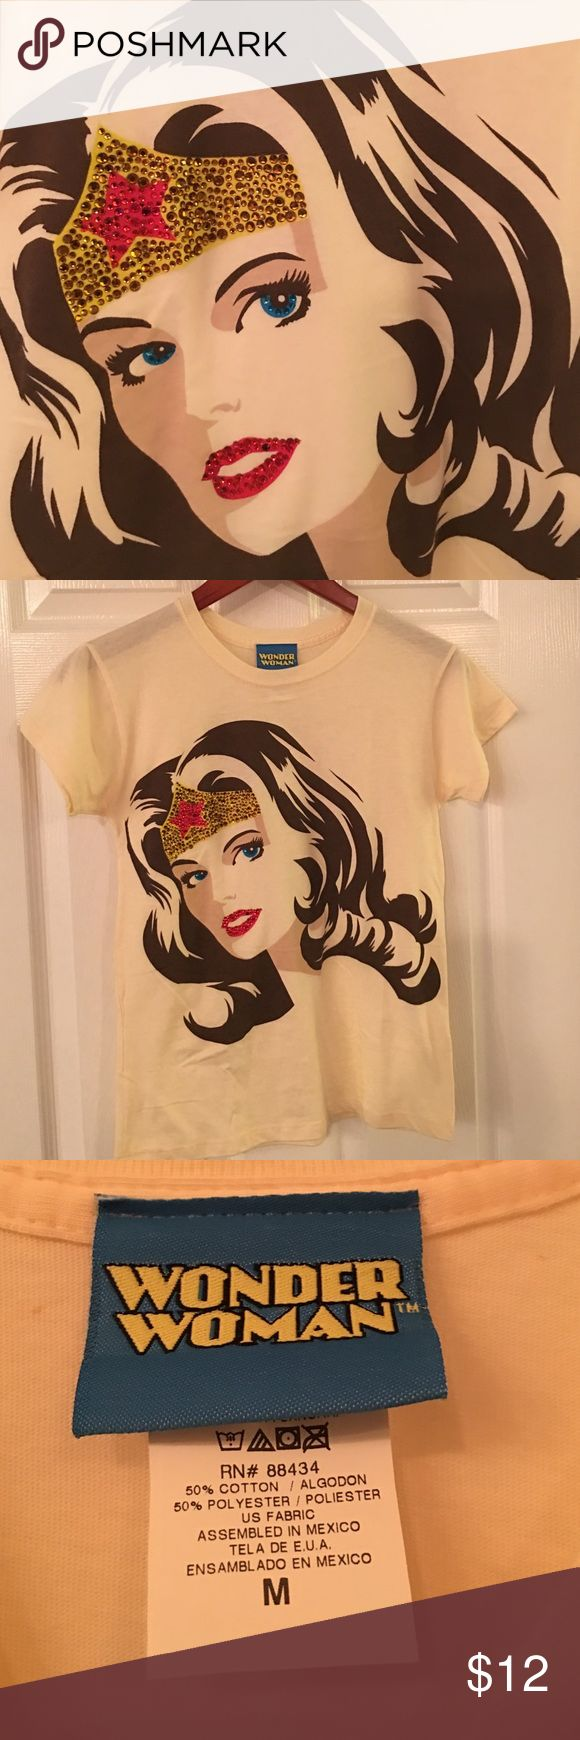 ⚡️Wonder Women Tee⚡️ NWOT Cream colored T-shirt. Wonder woman detailed with rhinestones. Fabric content is 50% cotton and 50% polyester. Absolutely beautiful grown-up DC comics T-shirt! DC Comics Tops Tees - Short Sleeve